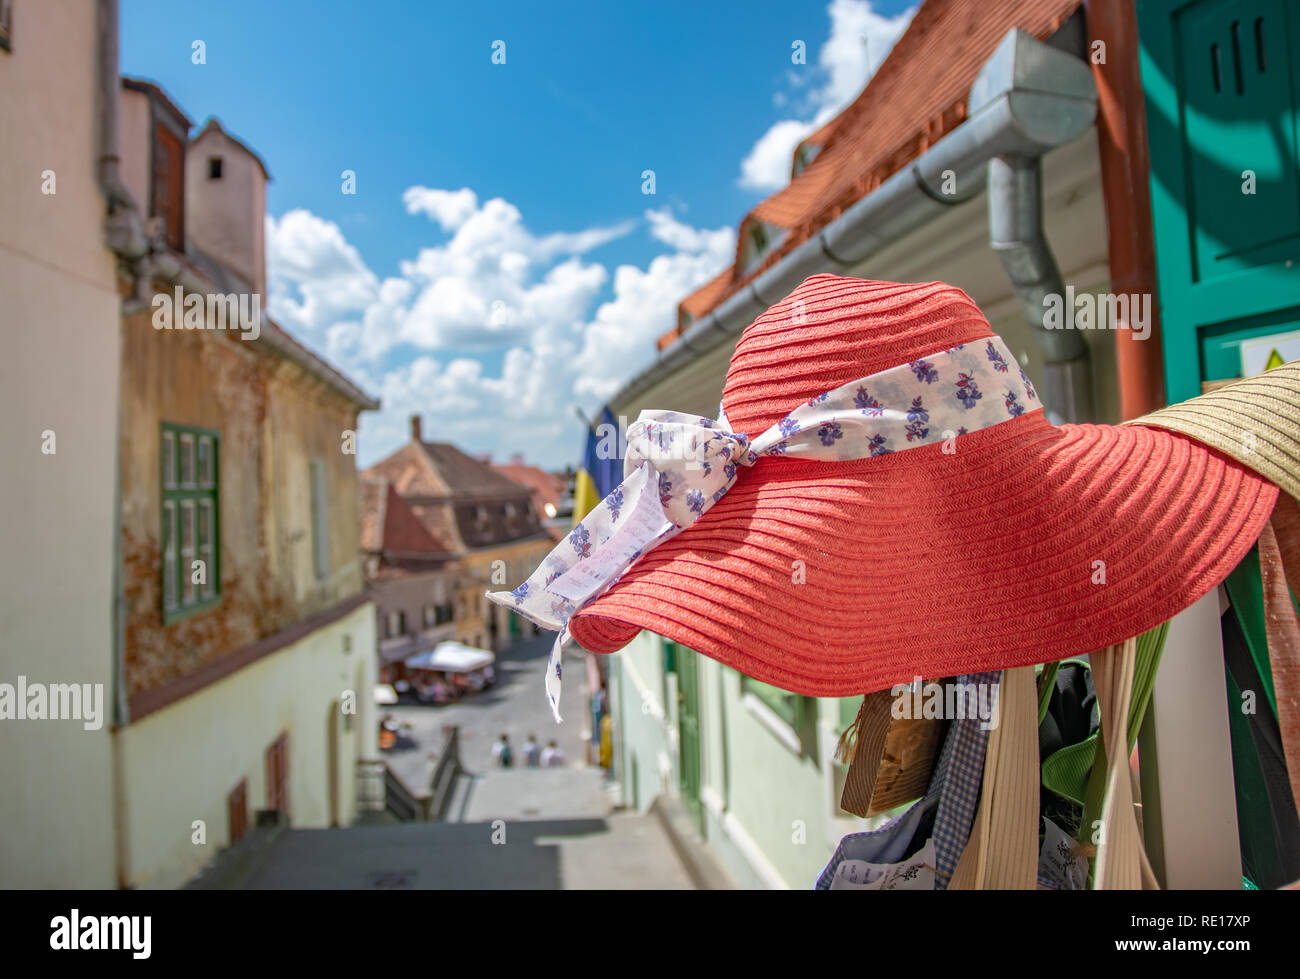 Pink women hat close-up on The Stairs Tower in a beautiful medieval town of Sibiu on a sunny summer day with blue sky, Sibiu, Romania. - Stock Image